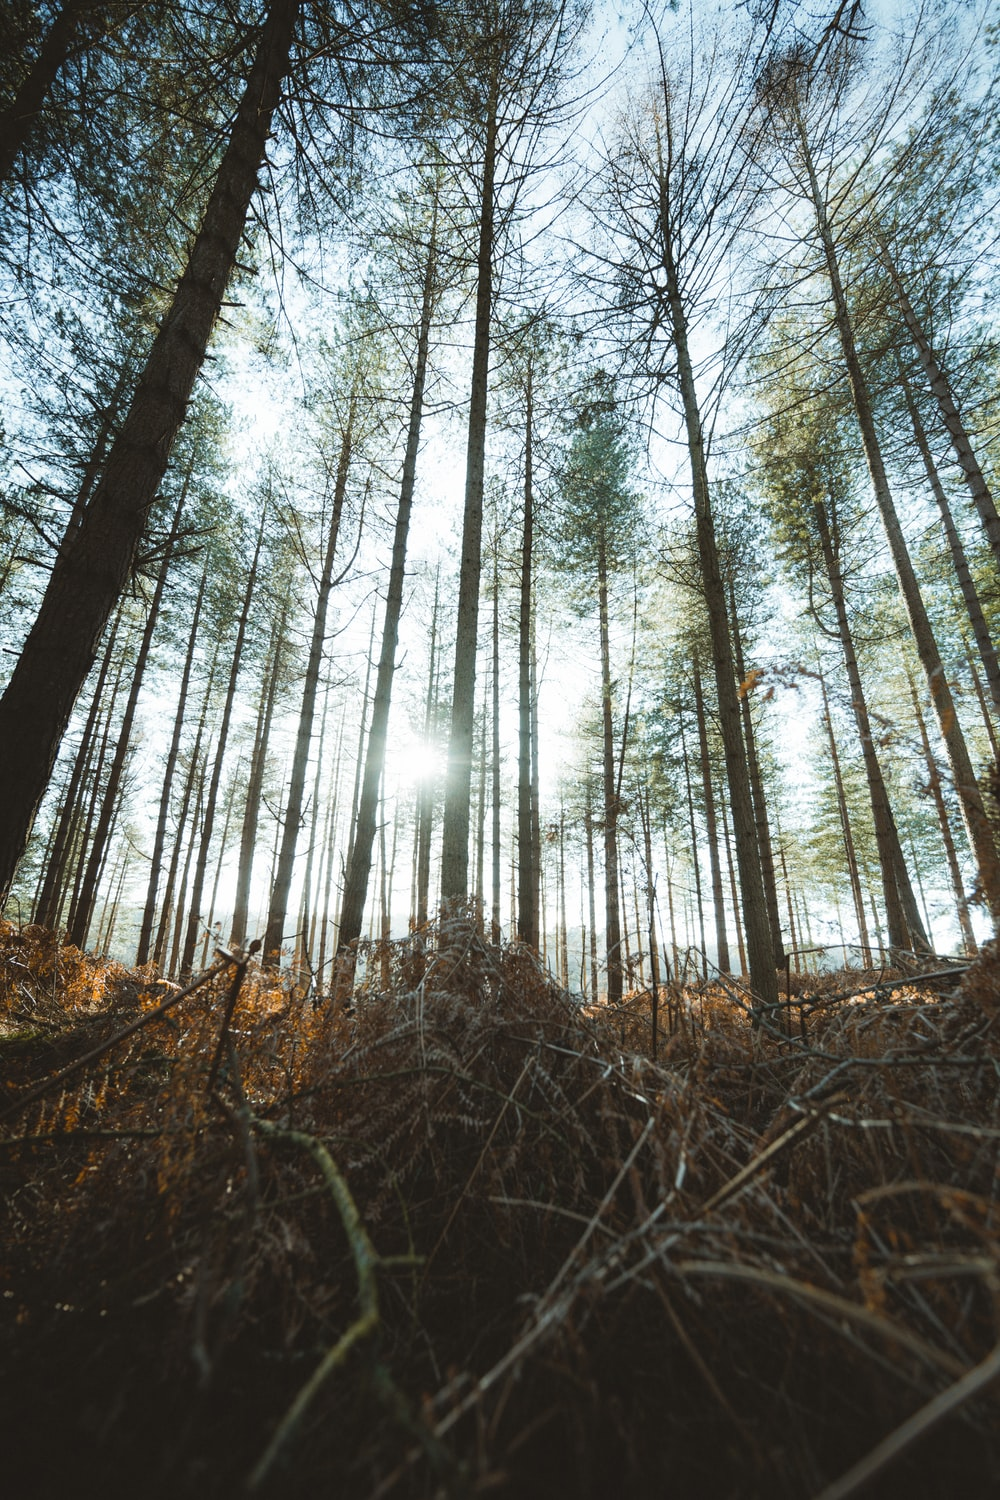 brown trees in forest during daytime